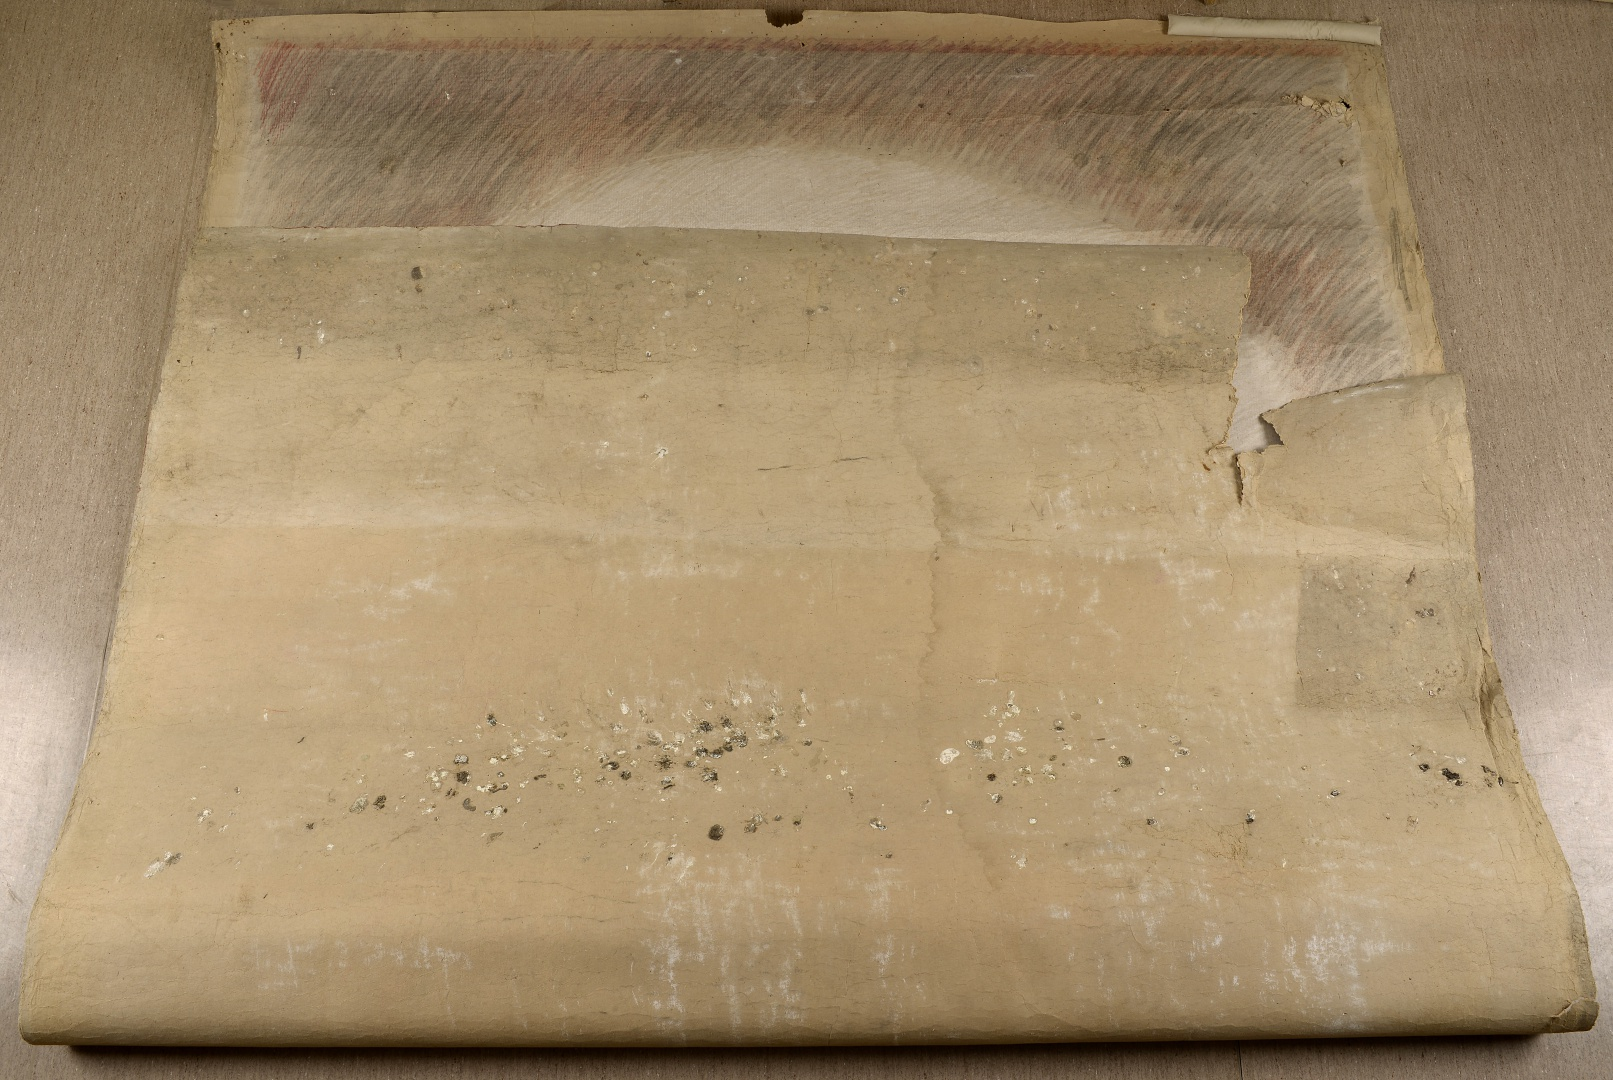 fig 1. The large drawing arrived at the Kanut rolled up, the surface covered with a considerable layer of dirt.